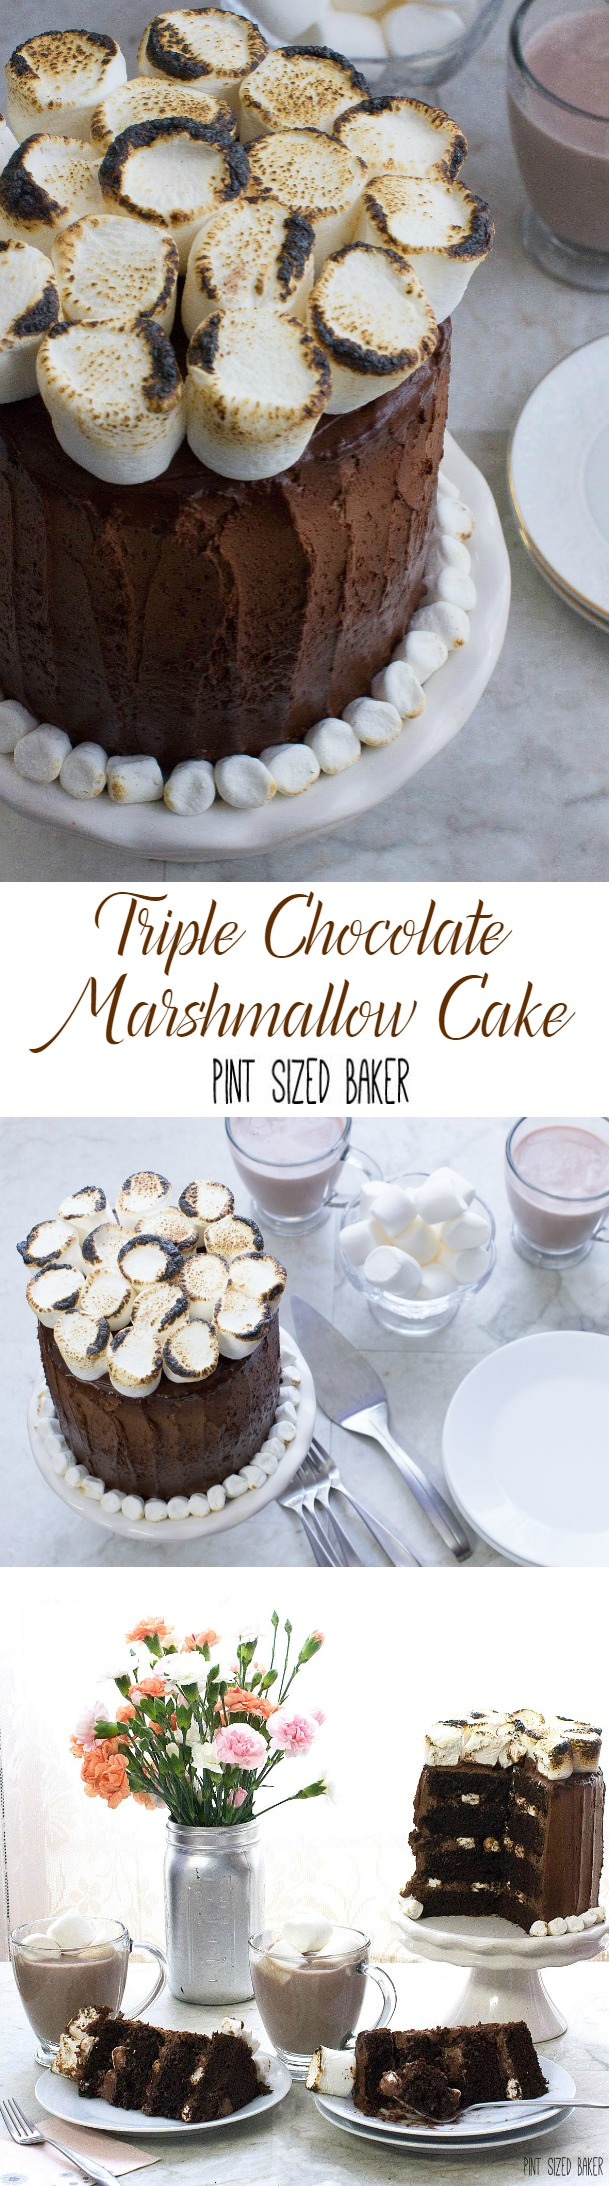 This Triple Chocolate Marshmallow Cake is calling my name!! Chocolate Cake, and fudgy frosting with toasted marshmallows is a really delicious dessert!